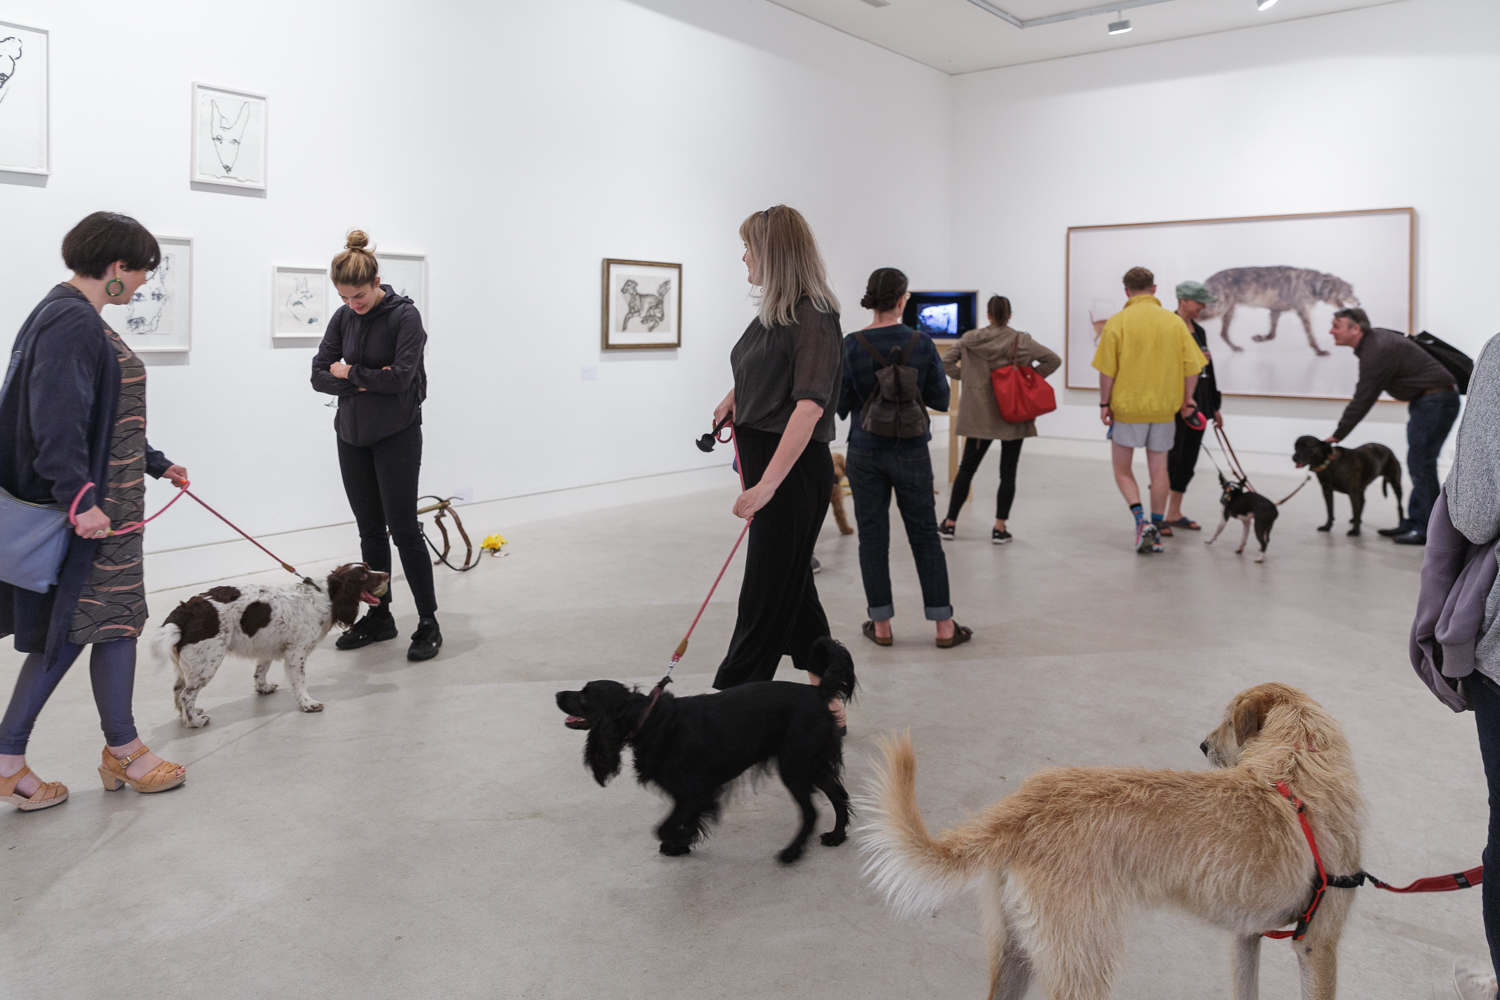 Lake Gallery filled with dogs and people viewing art at the preview of DOG SHOW in 2018